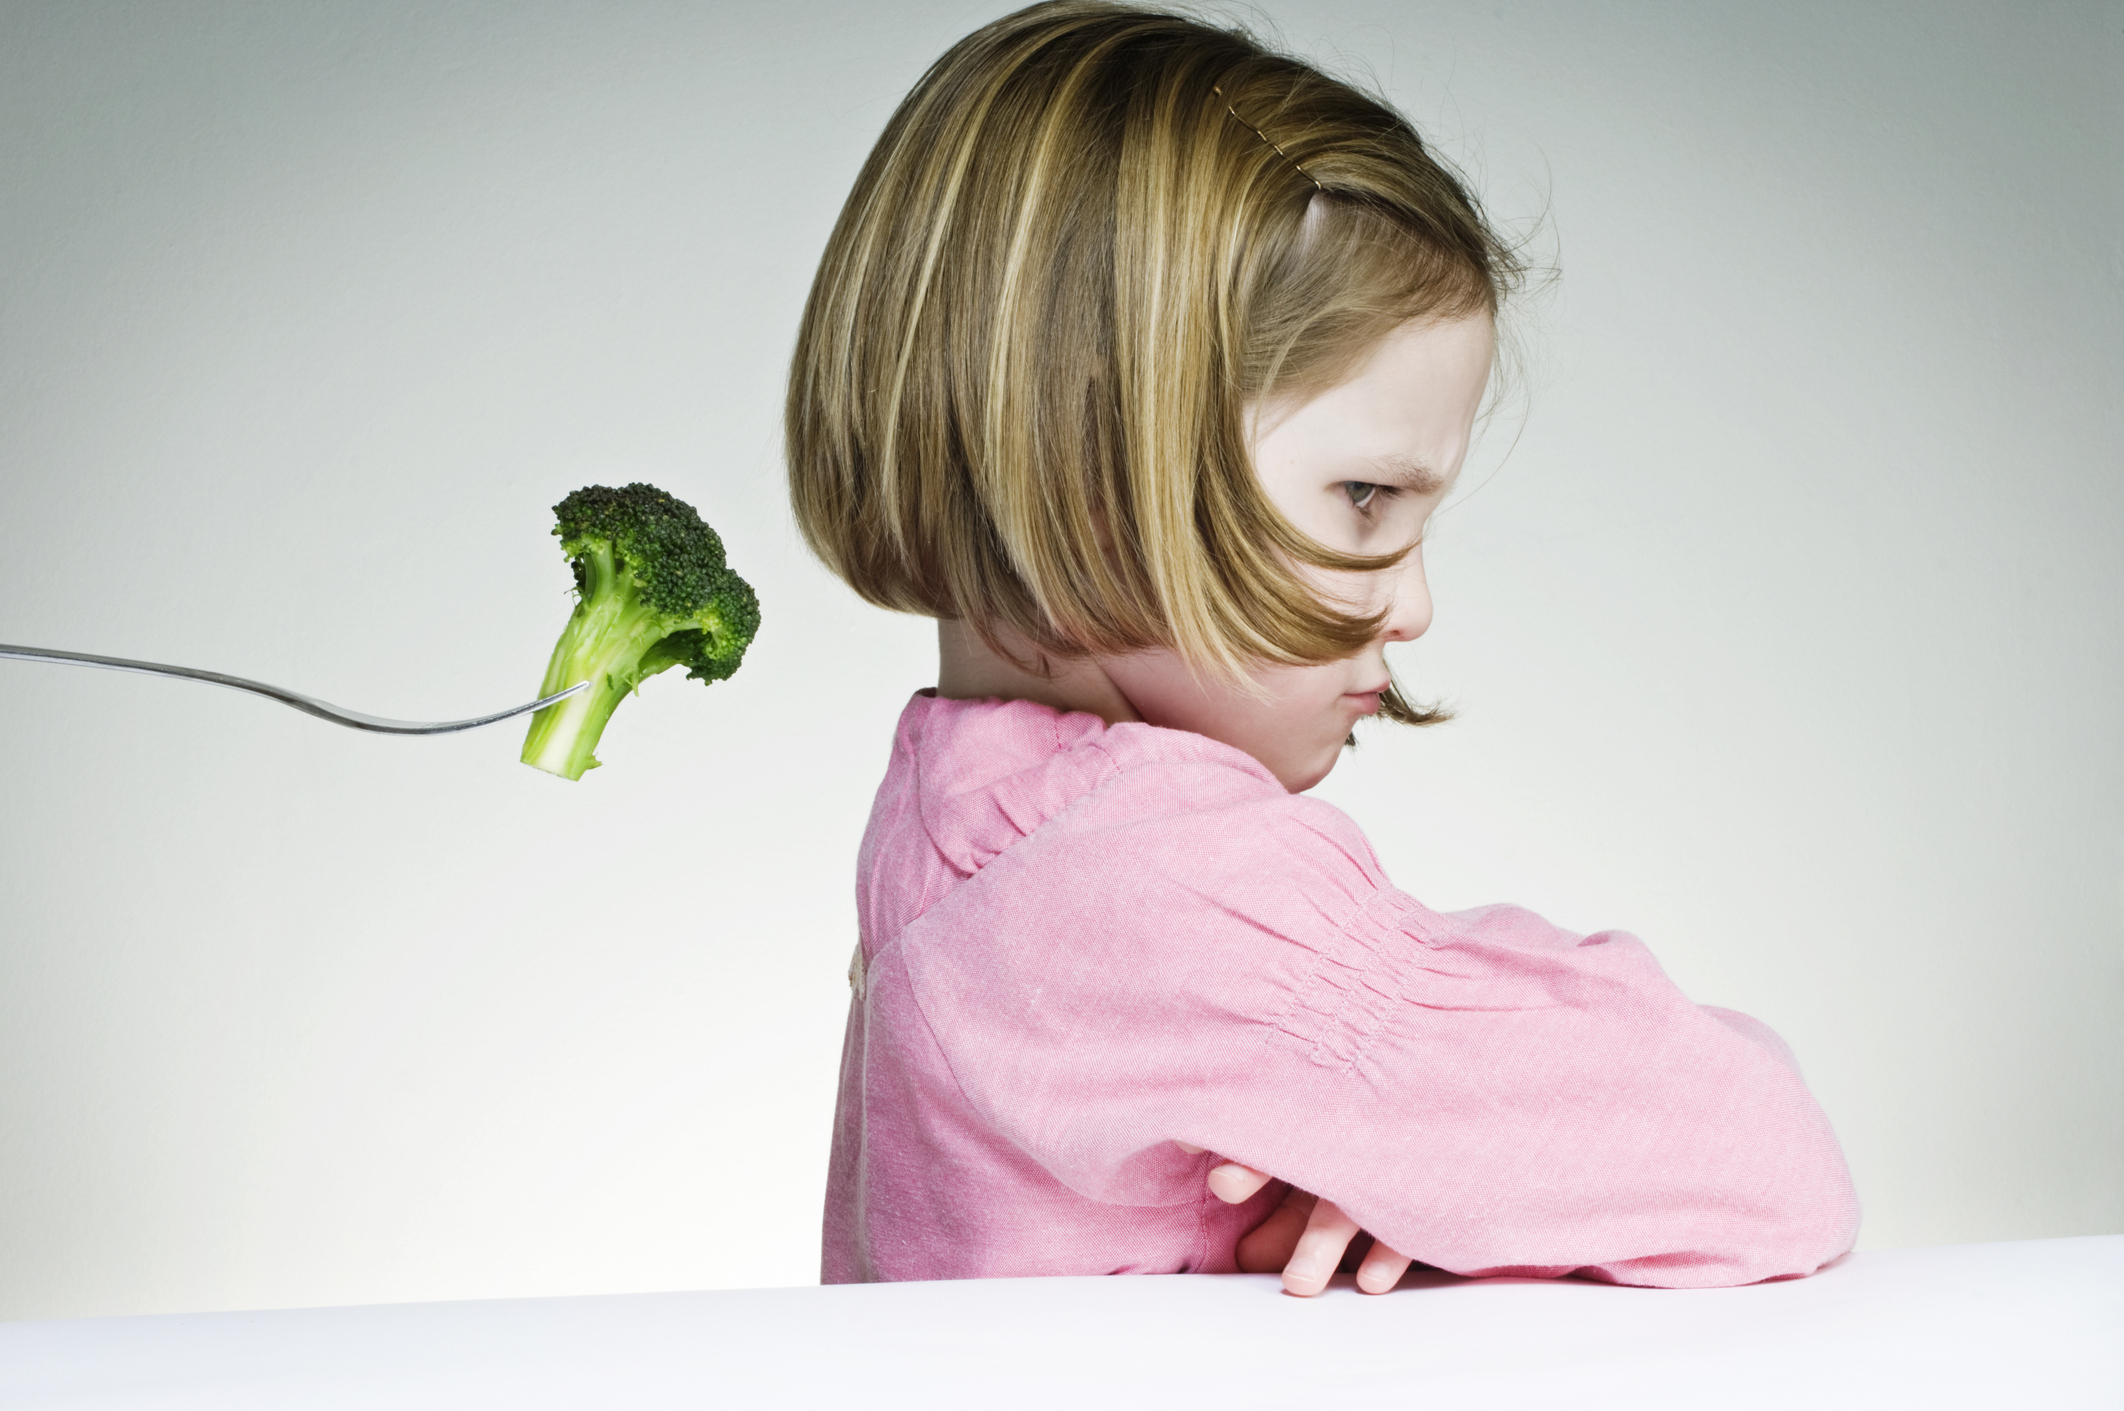 Five year old girl who is not keen on eating her greens.